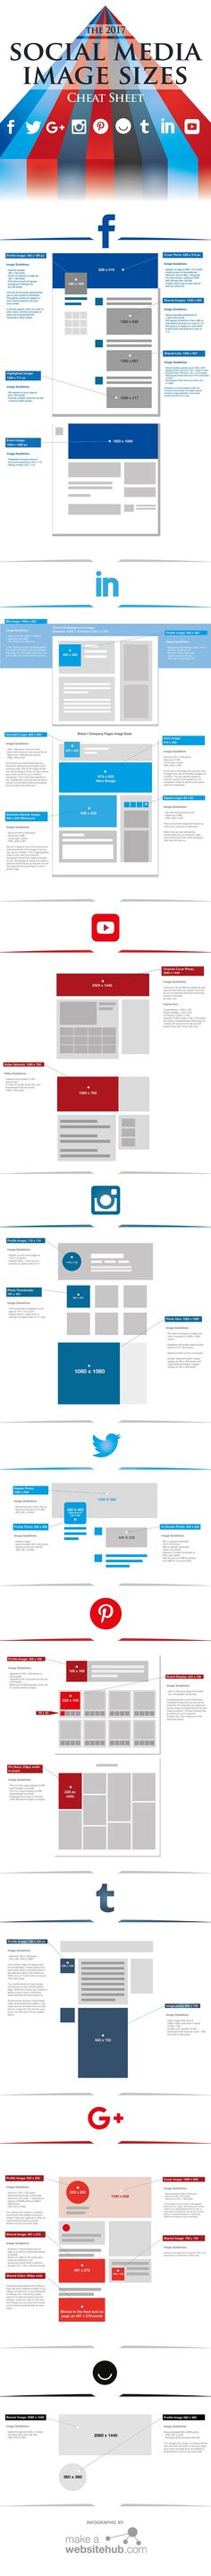 Social Media Image Sizes Cheat Sheet